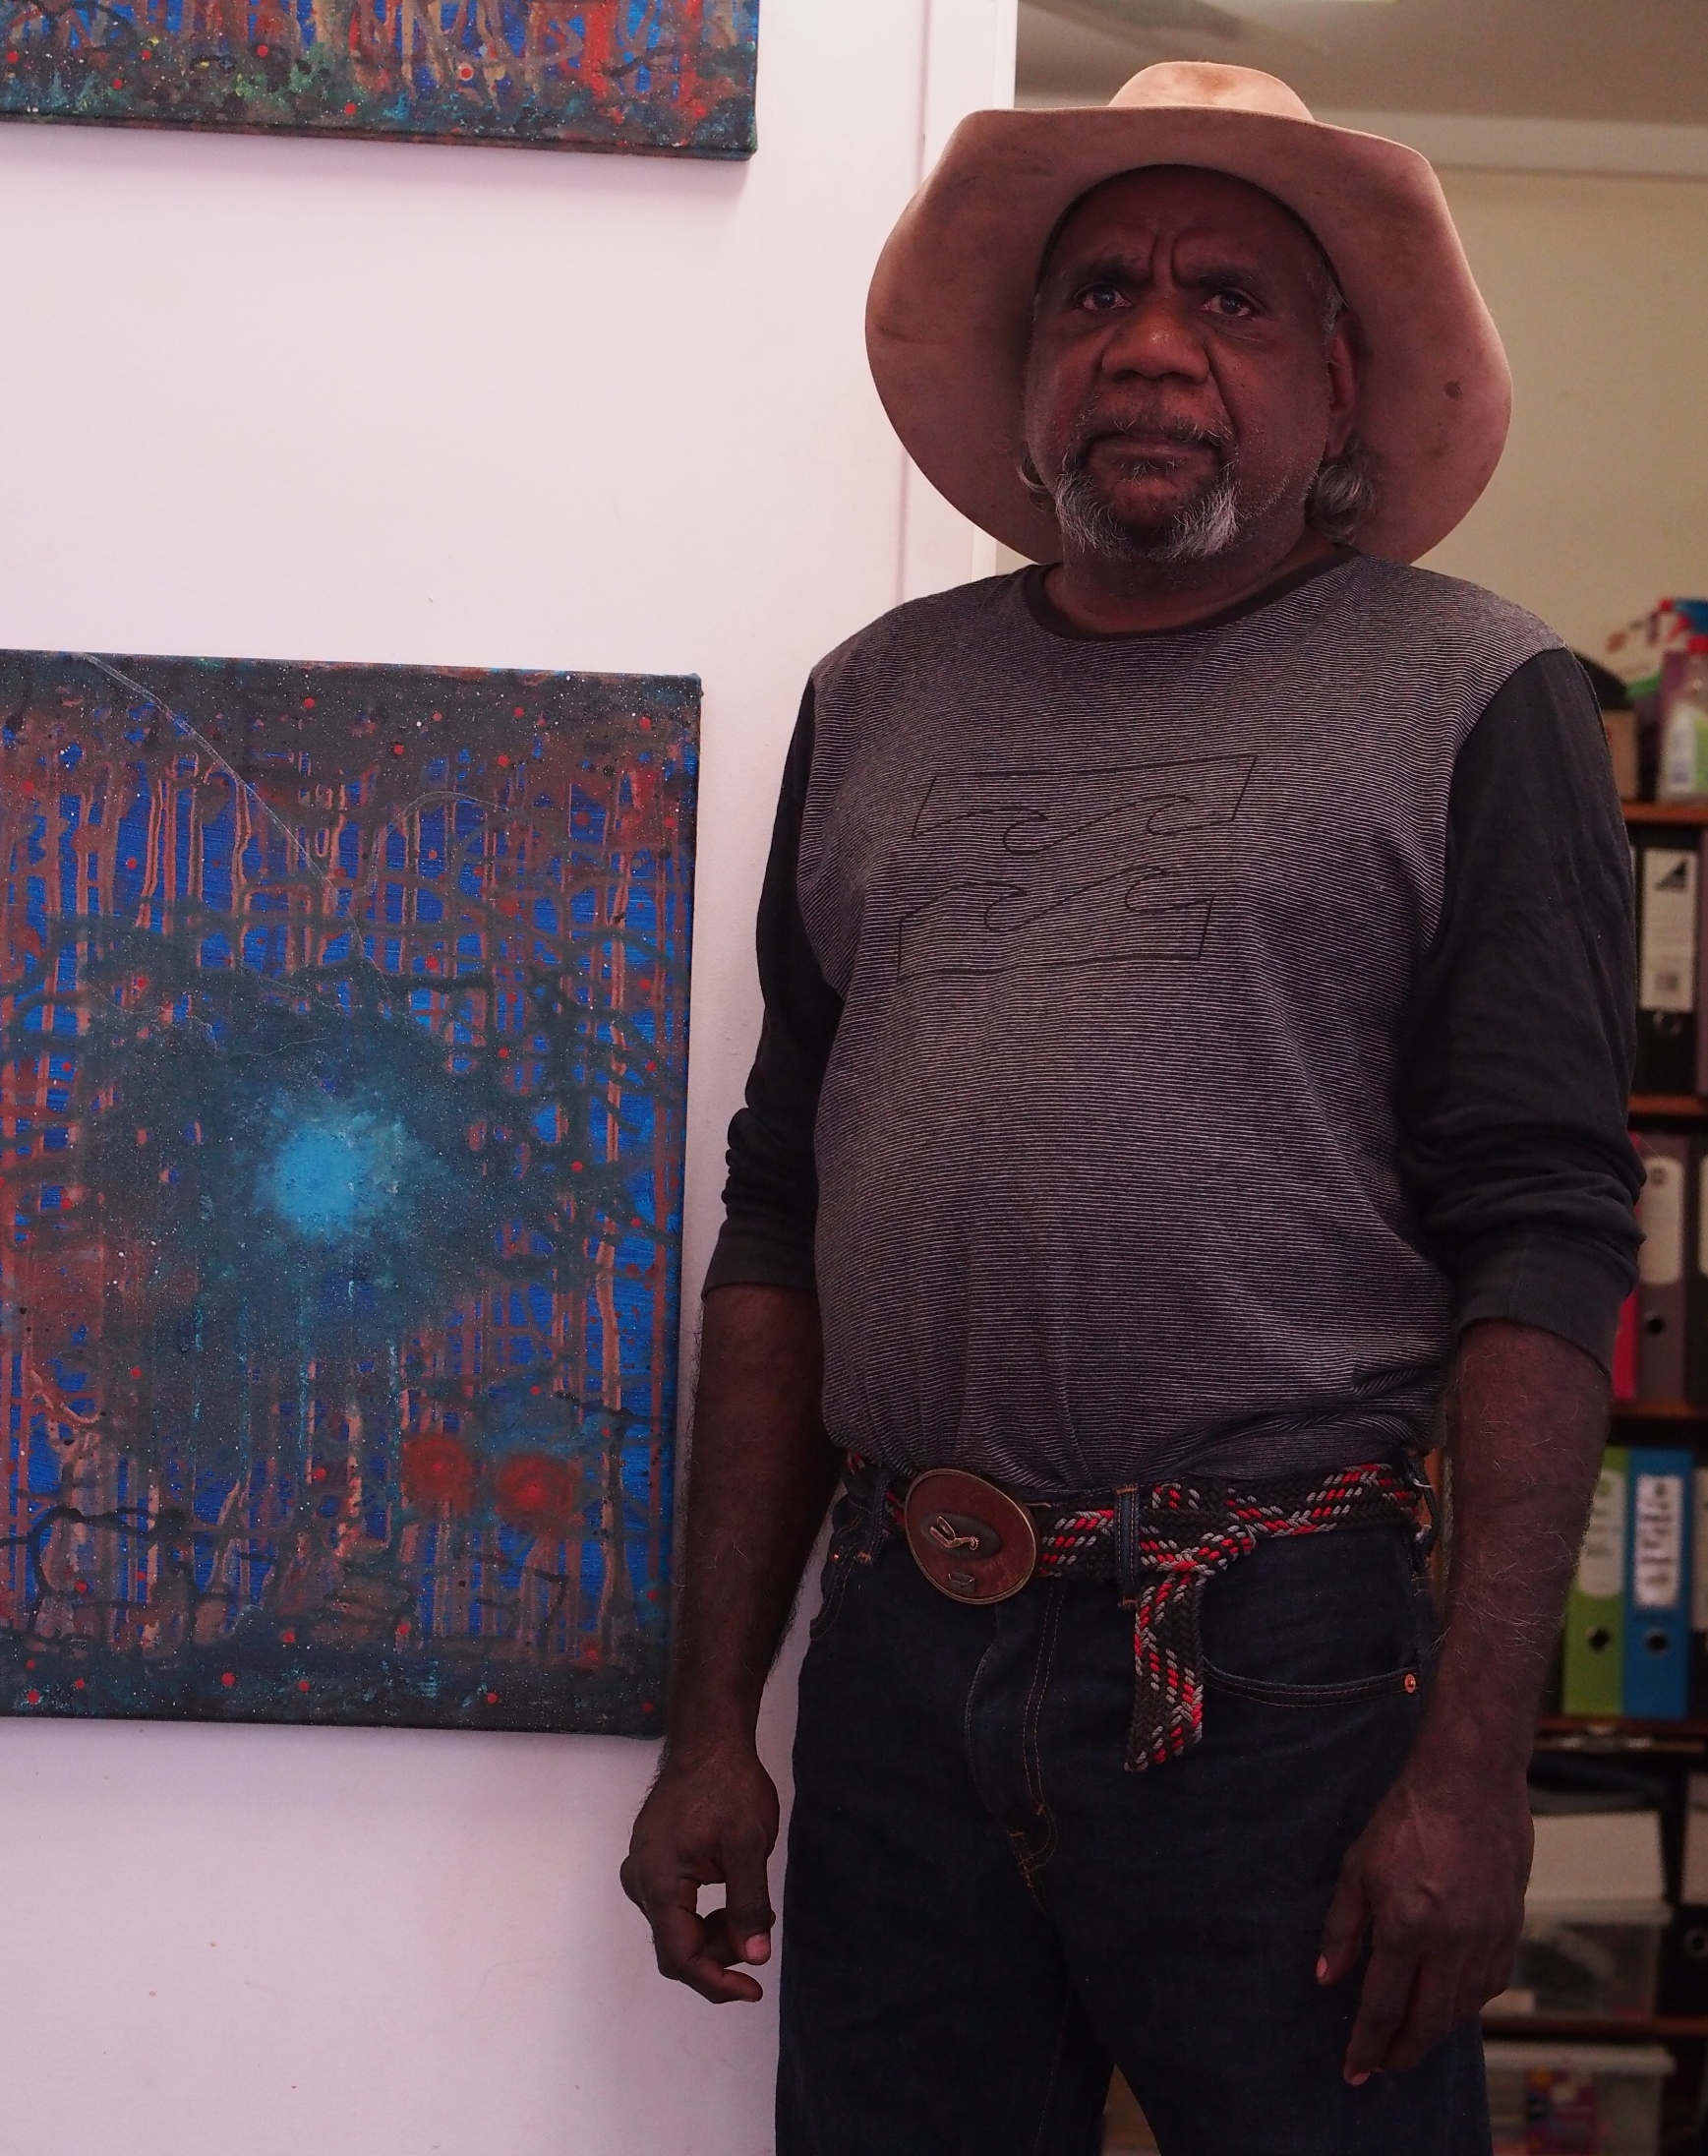 Barry Nuggett at Mangkaja Arts, Fitzroy Crossing 2016 © AGWA